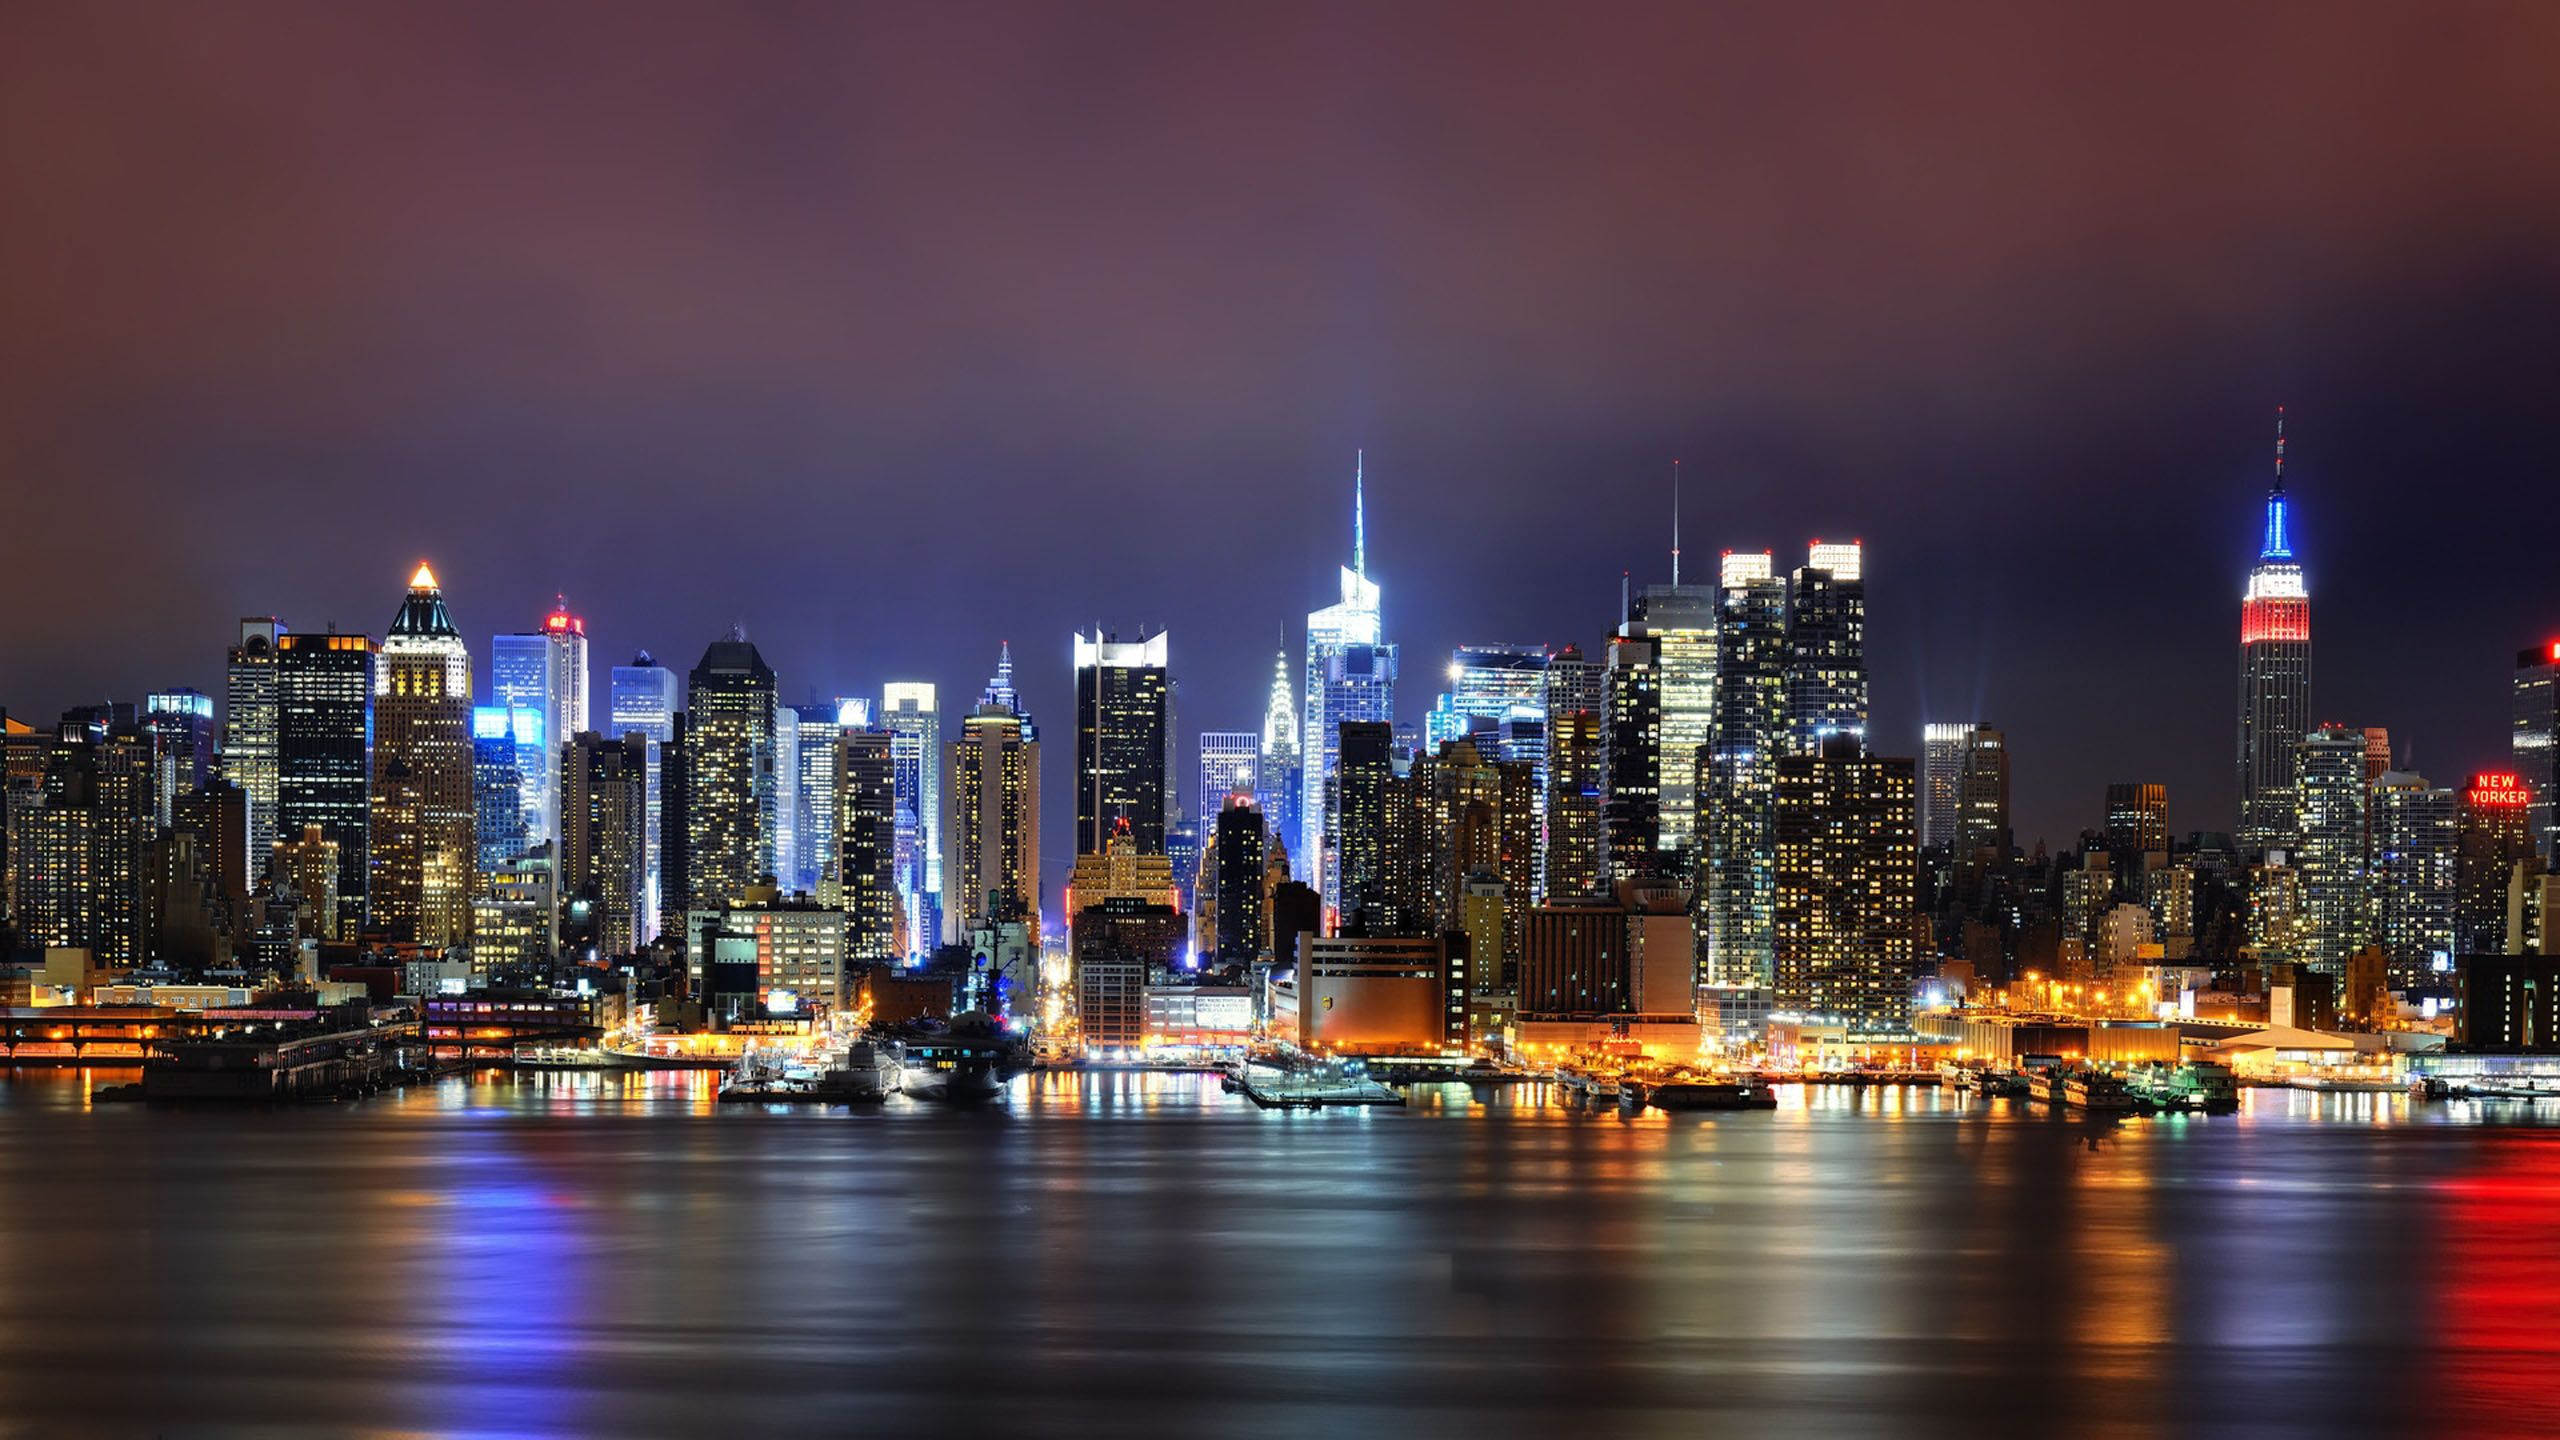 New York City Night Lights Wallpaper New York Hintergrundbild